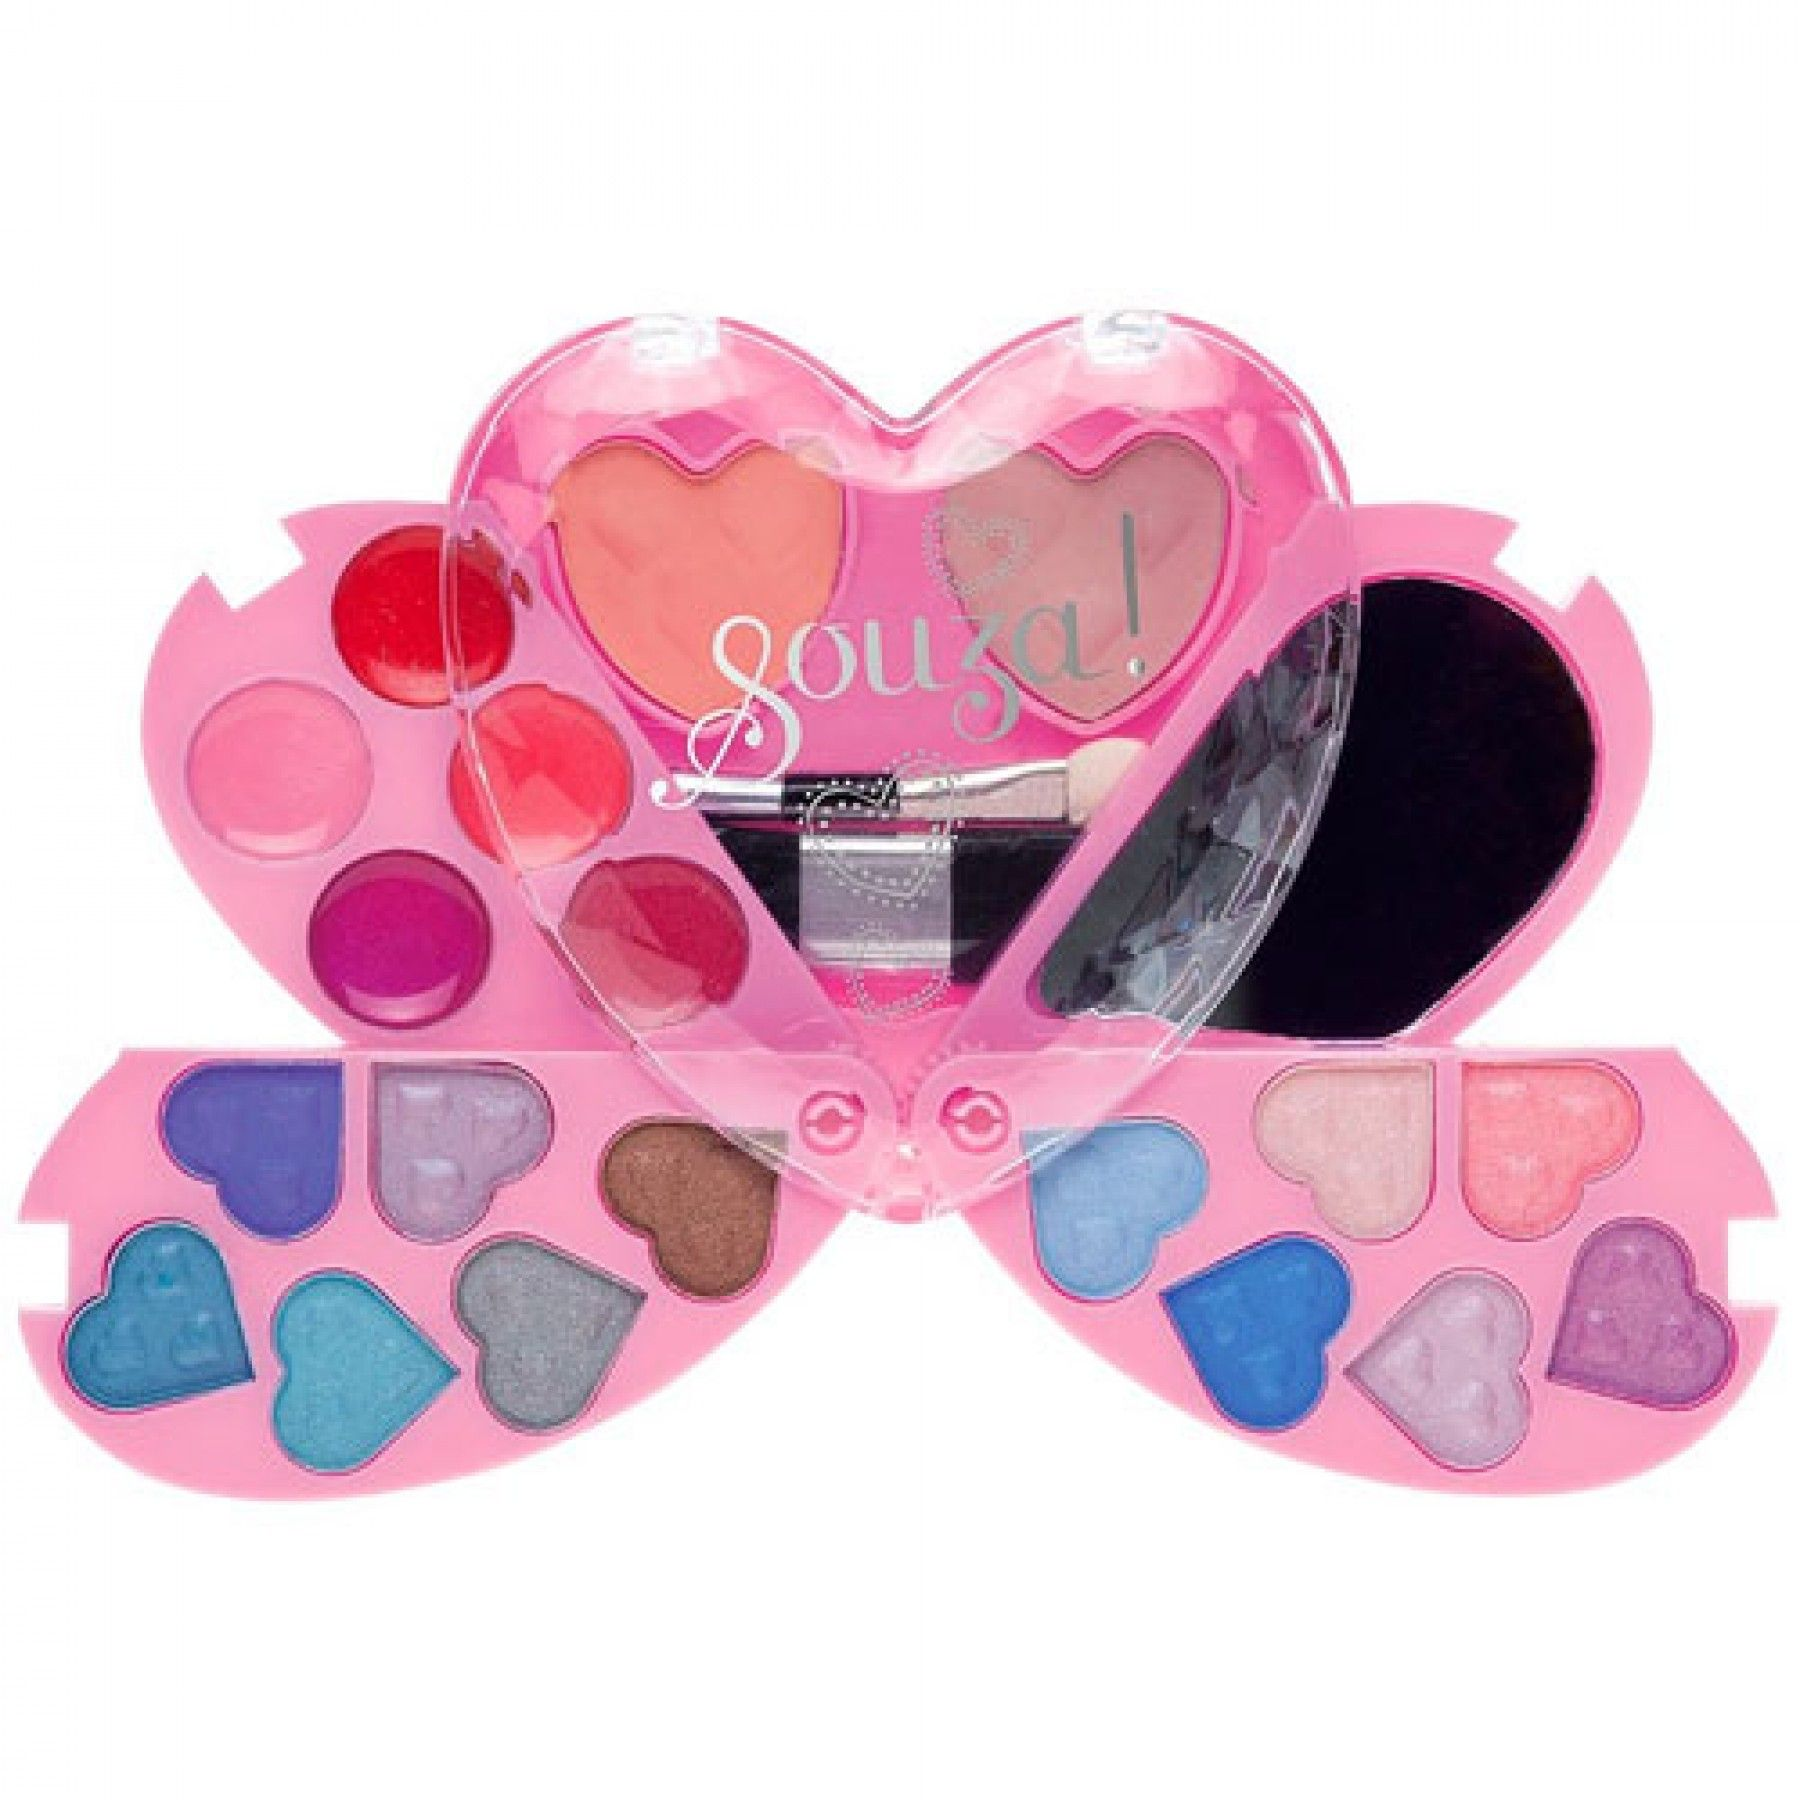 souza for kids make-up kit deise rose 104309 | ilovespeelgoed.nl